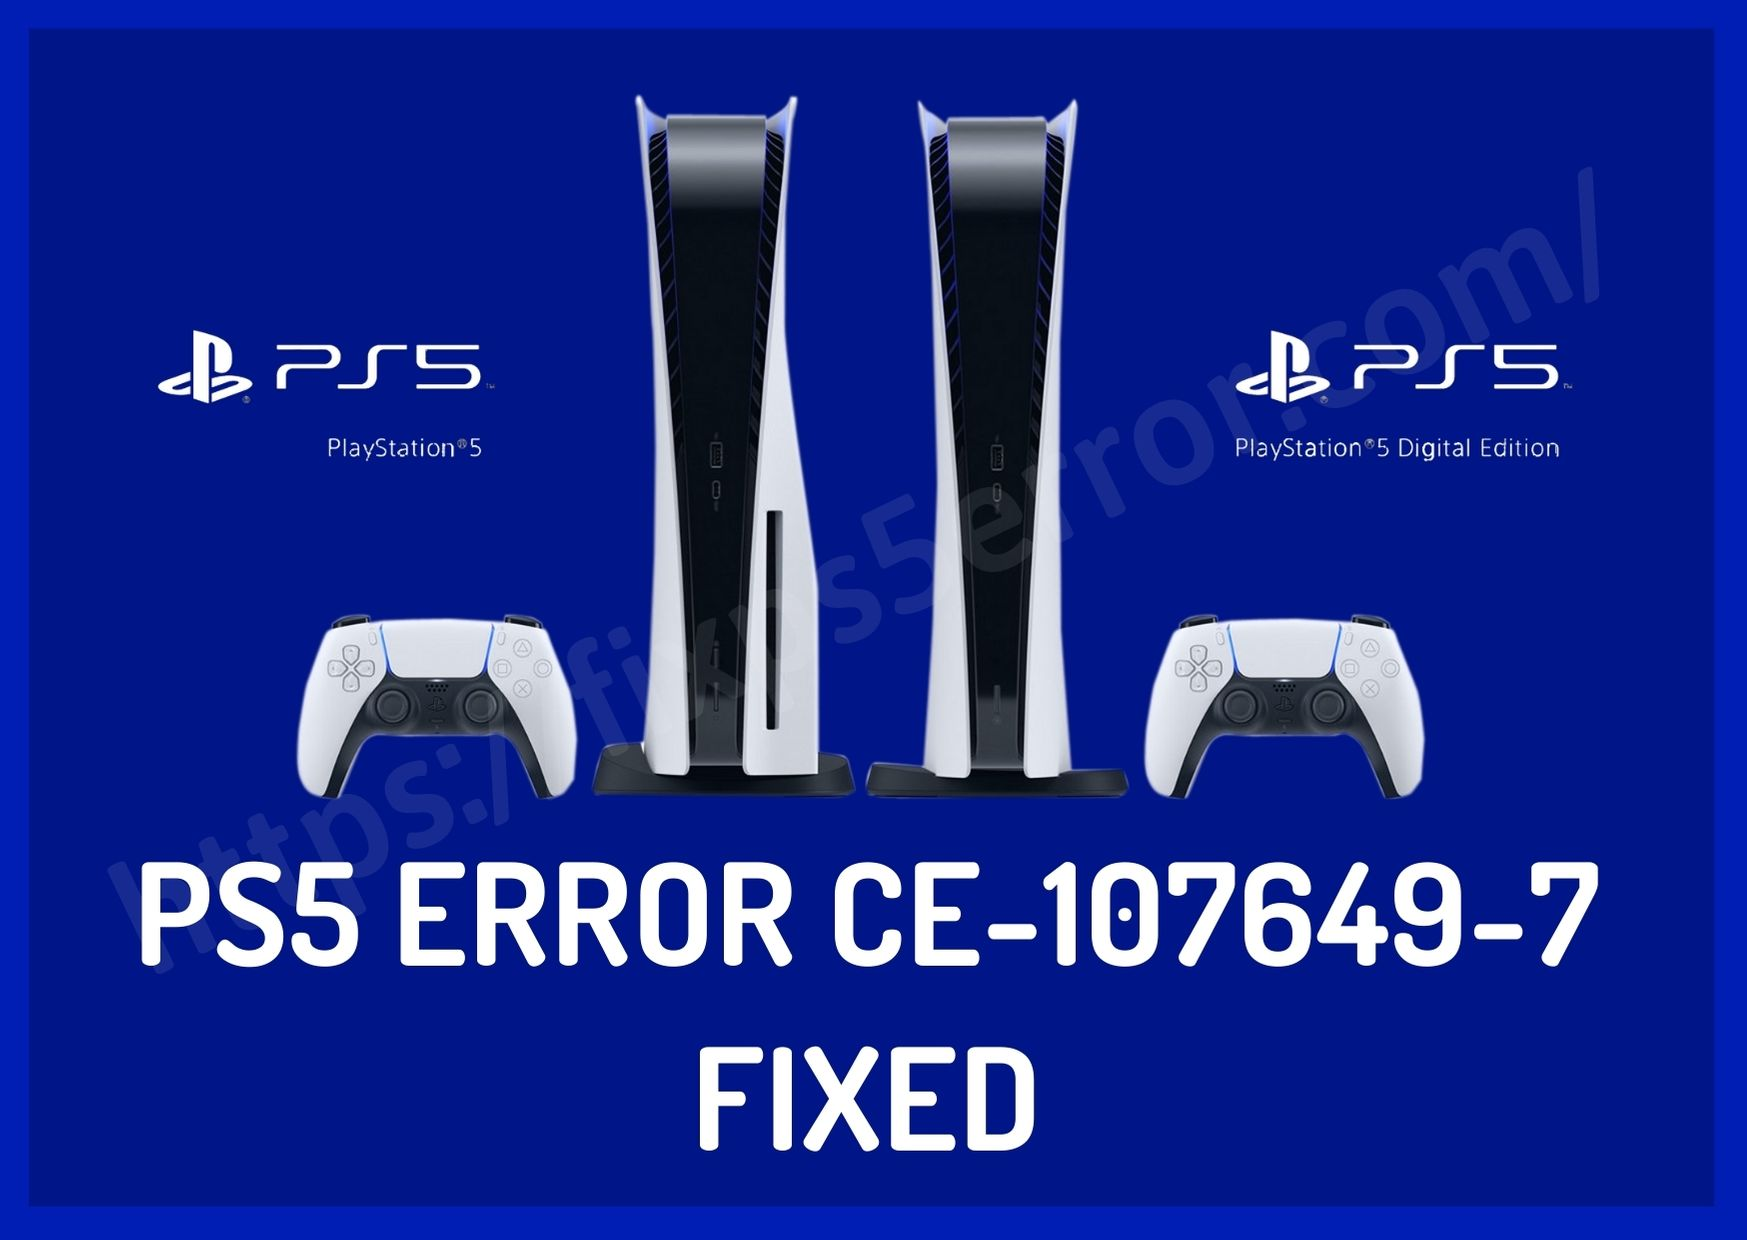 PS5 Error CE-107649-7 Fixed